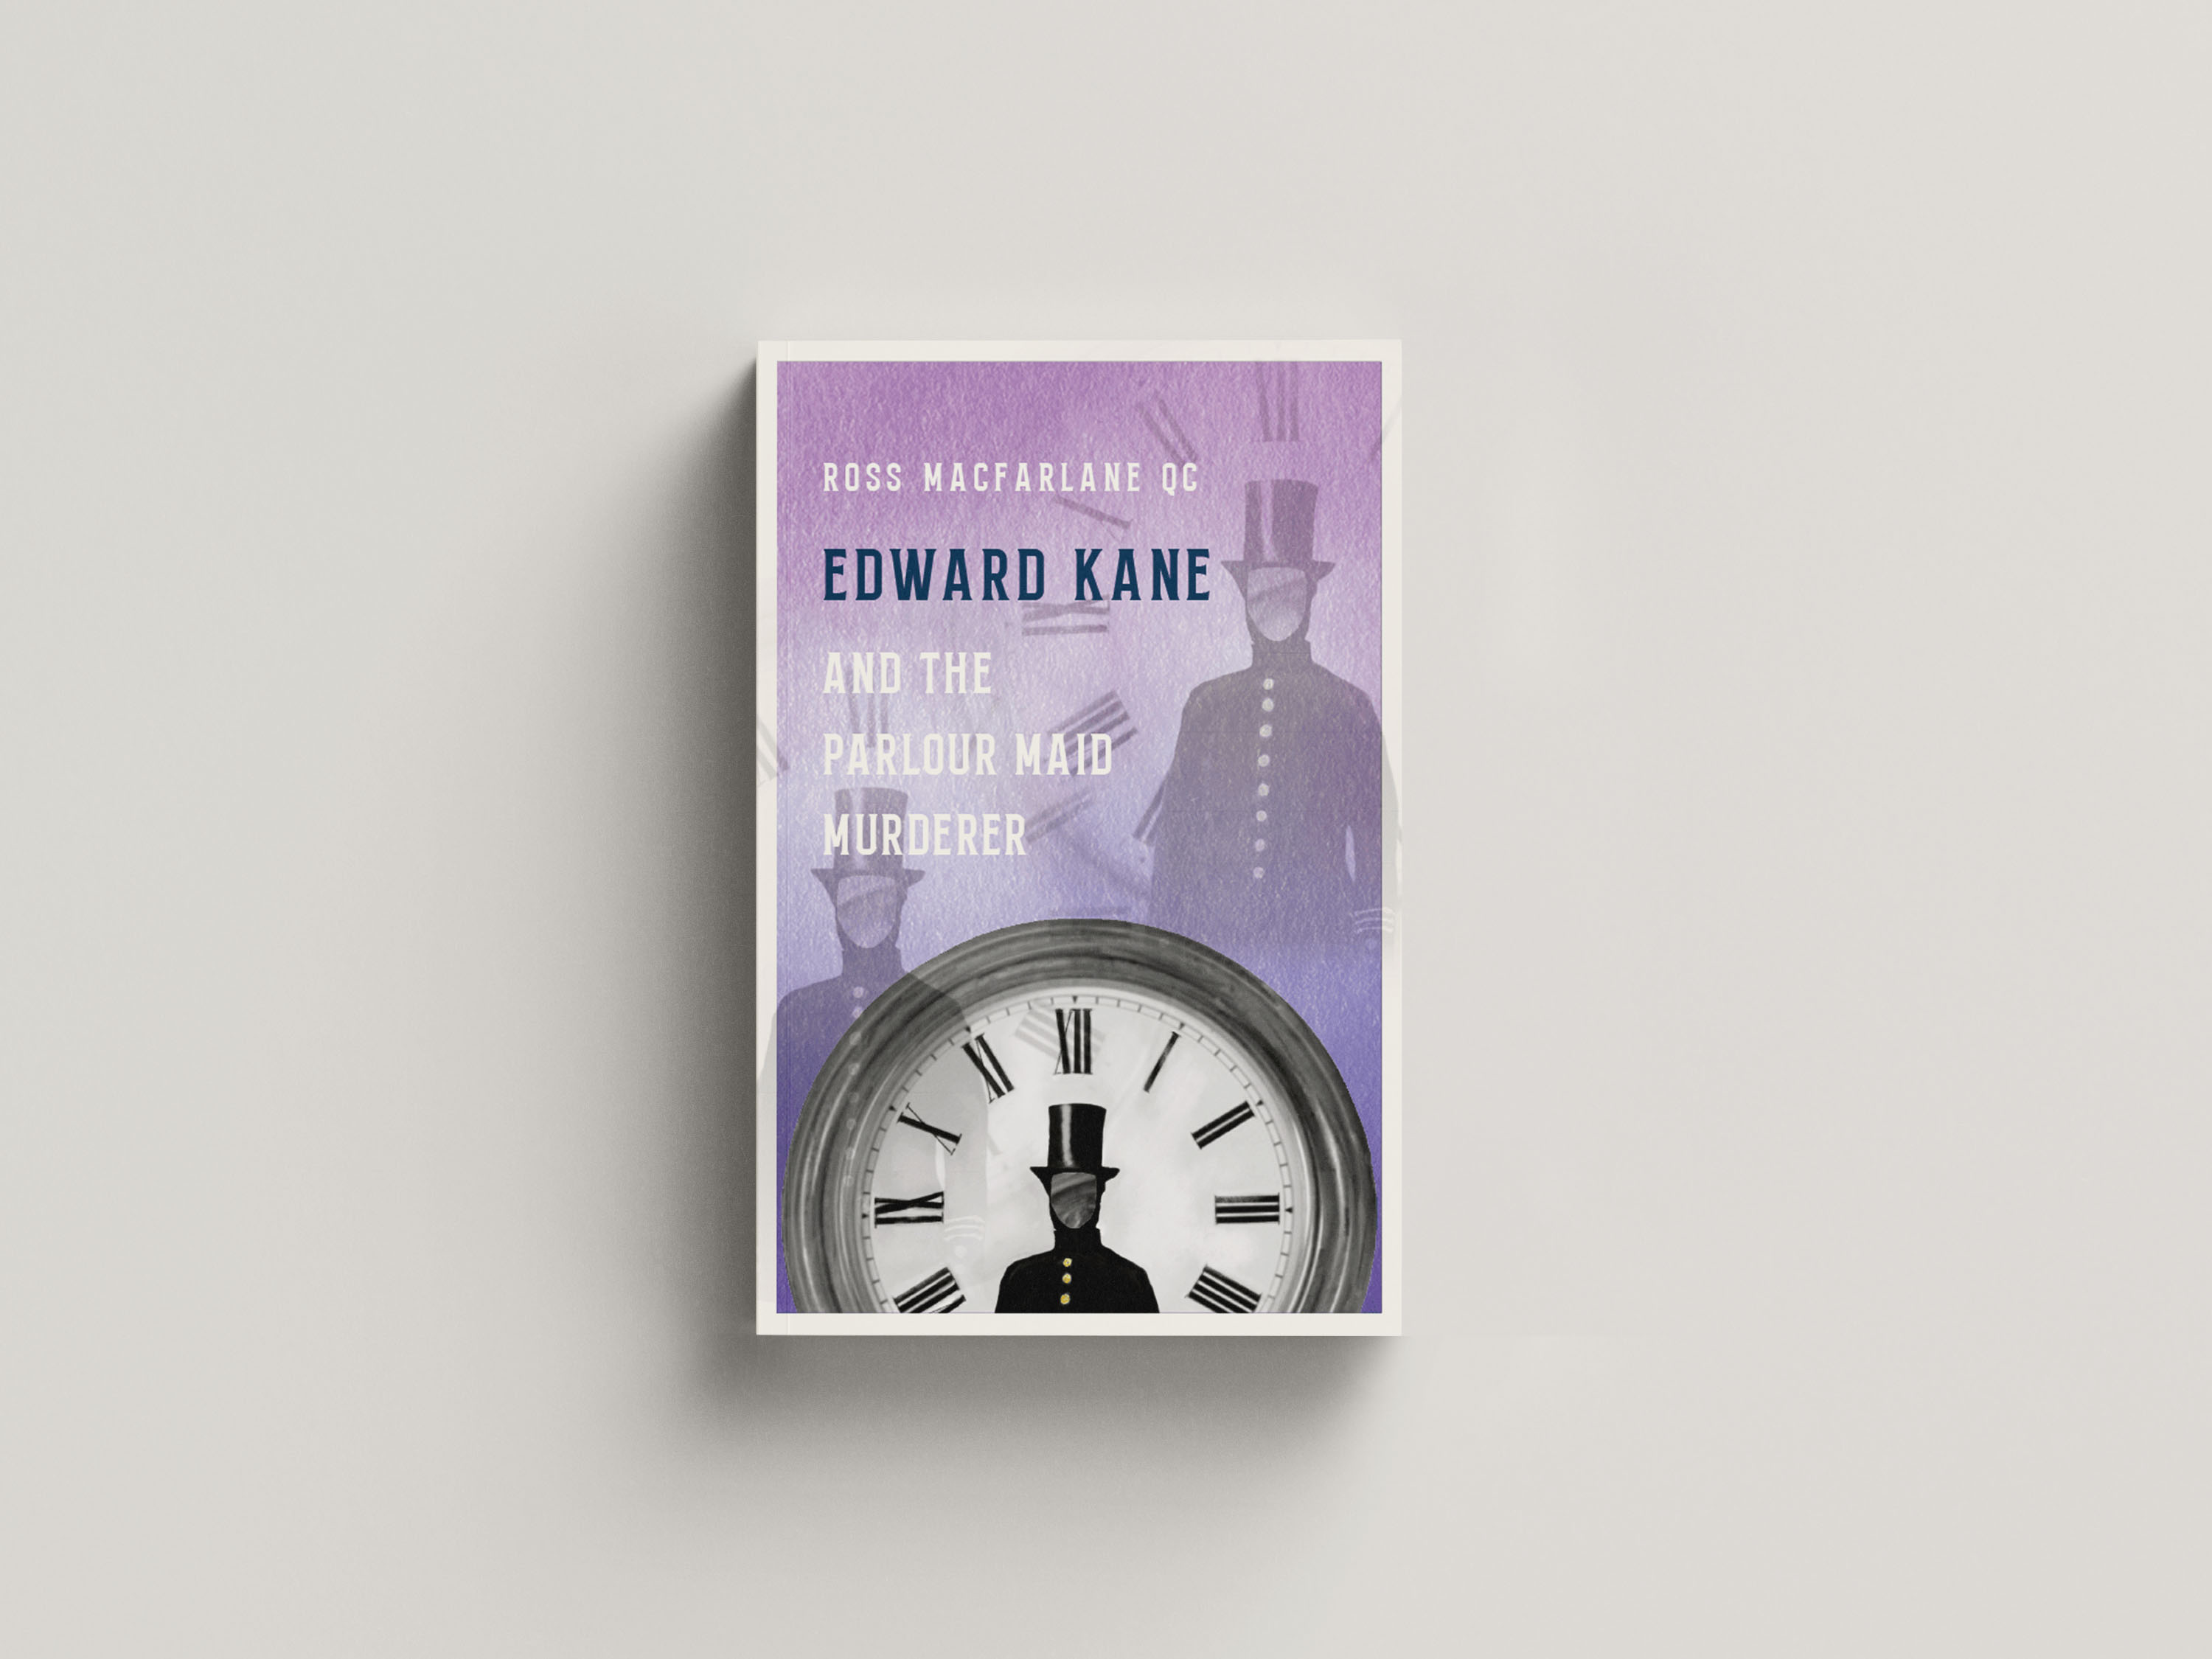 A clockface with a policeman in the centre on a purple background